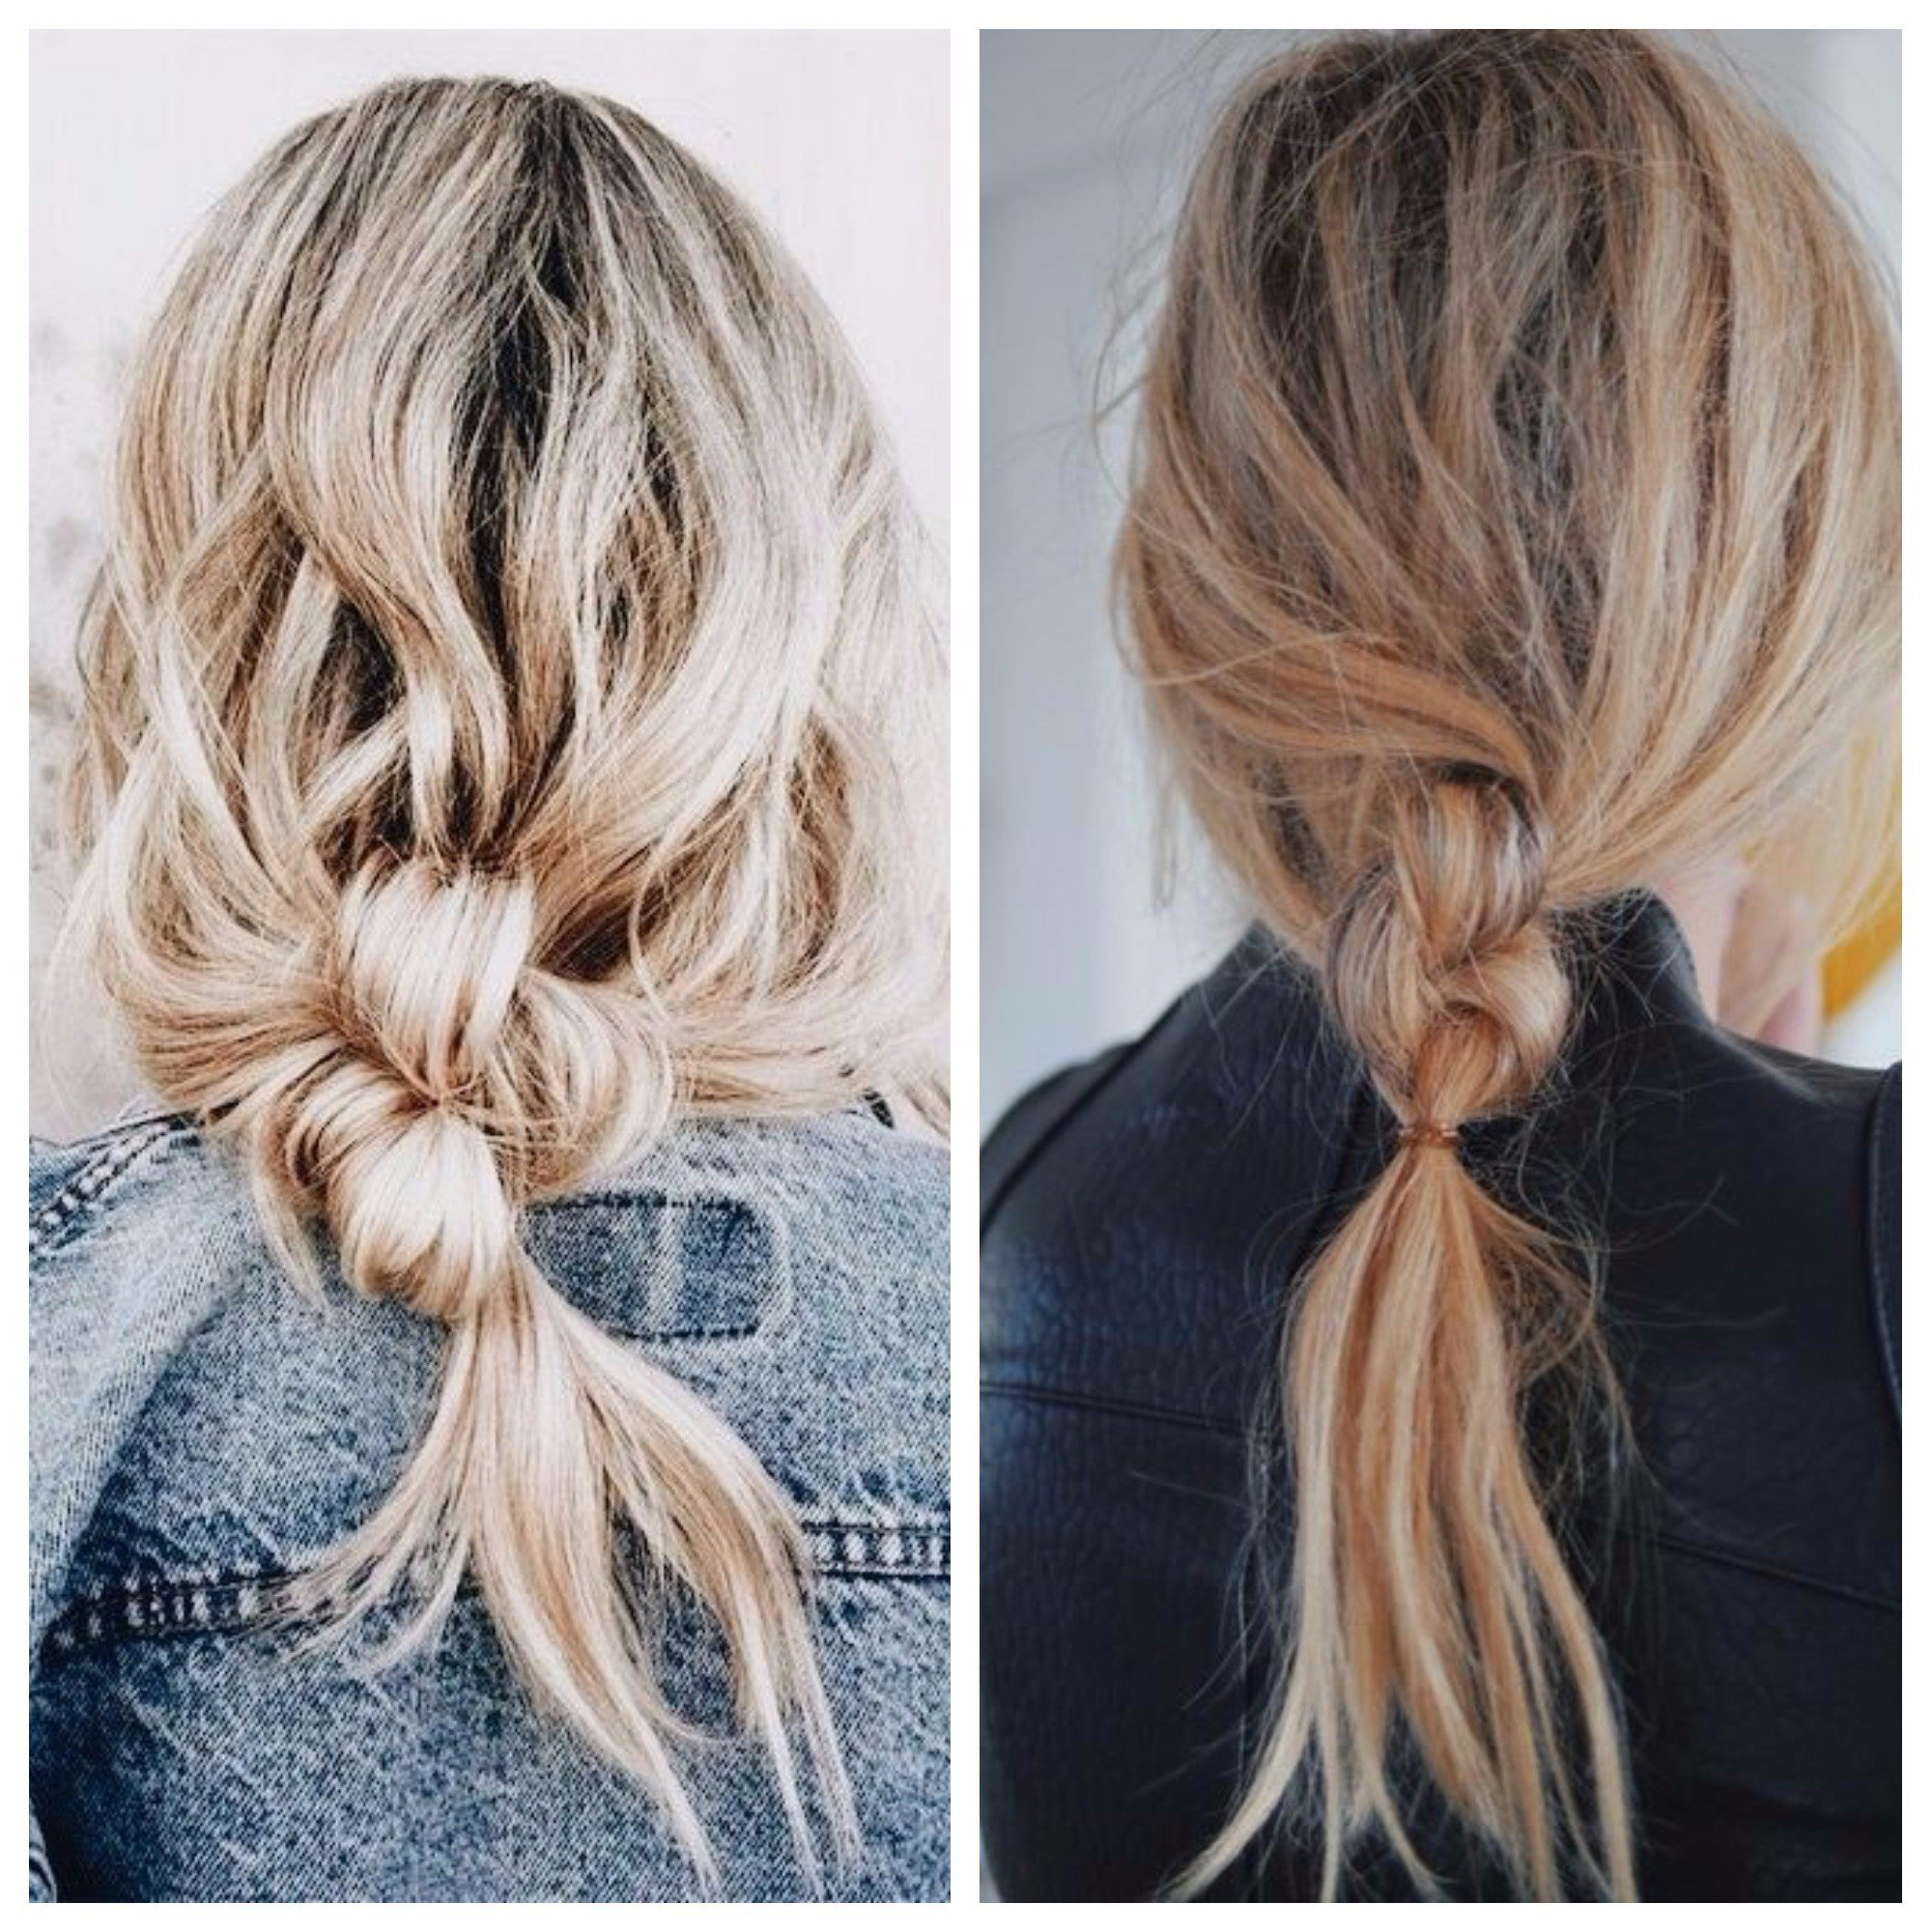 The Best Loose Braid Hairstyle Ideas Hair World Magazine Pictures